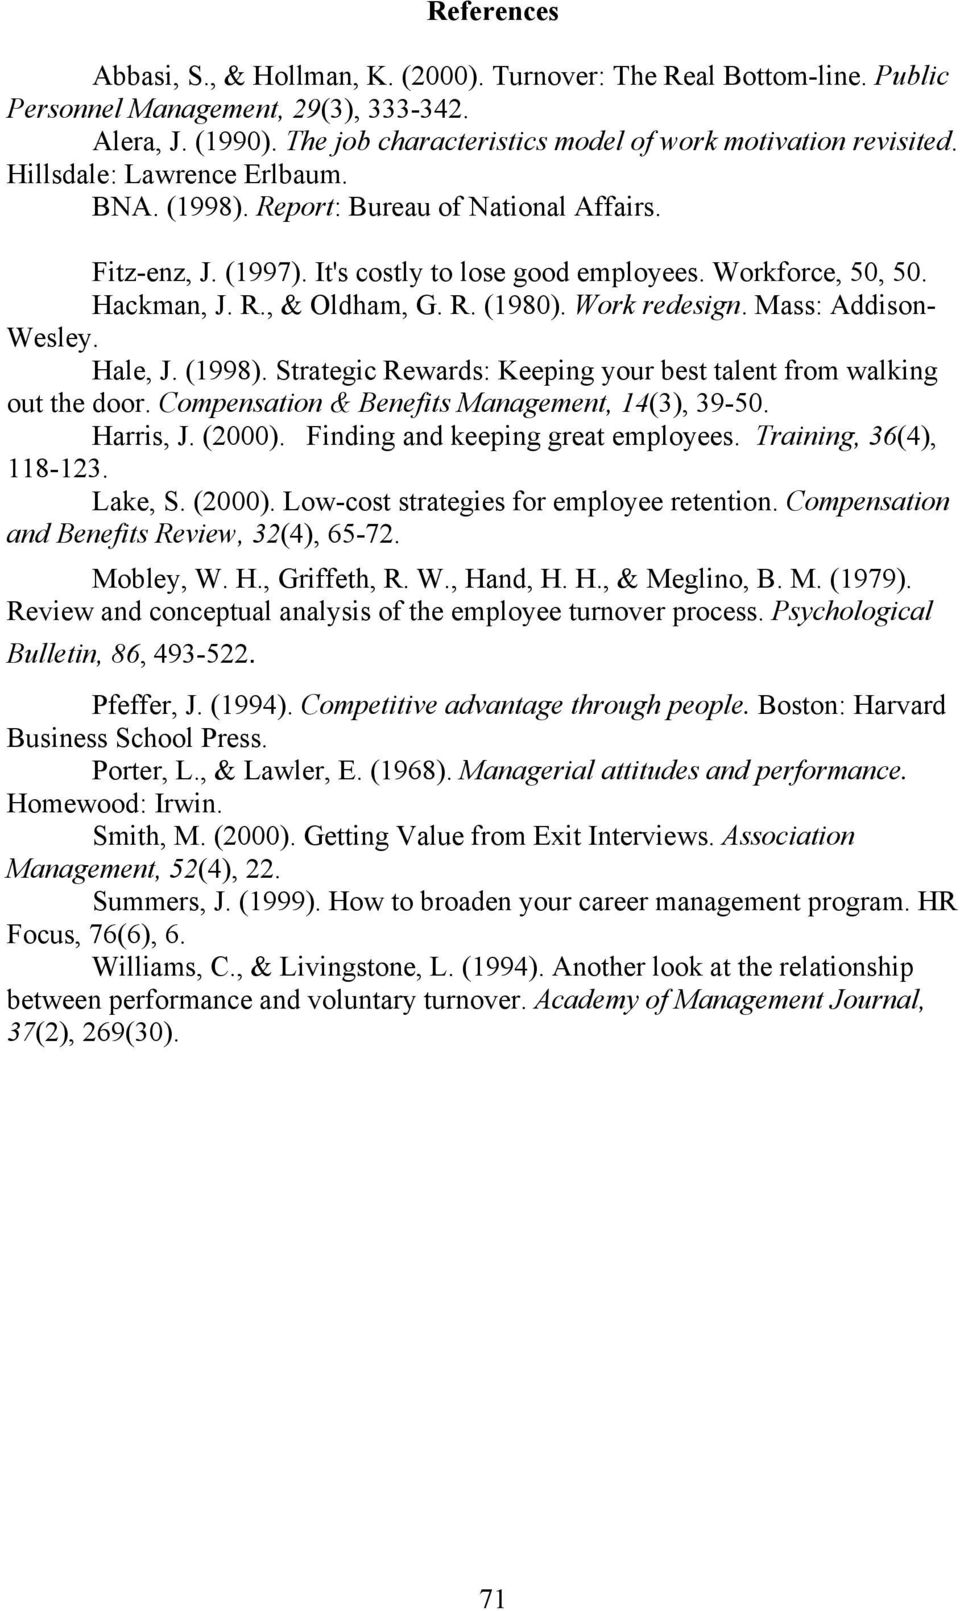 Work redesign. Mass: Addison- Wesley. Hale, J. (1998). Strategic Rewards: Keeping your best talent from walking out the door. Compensation & Benefits Management, 14(3), 39-50. Harris, J. (2000).